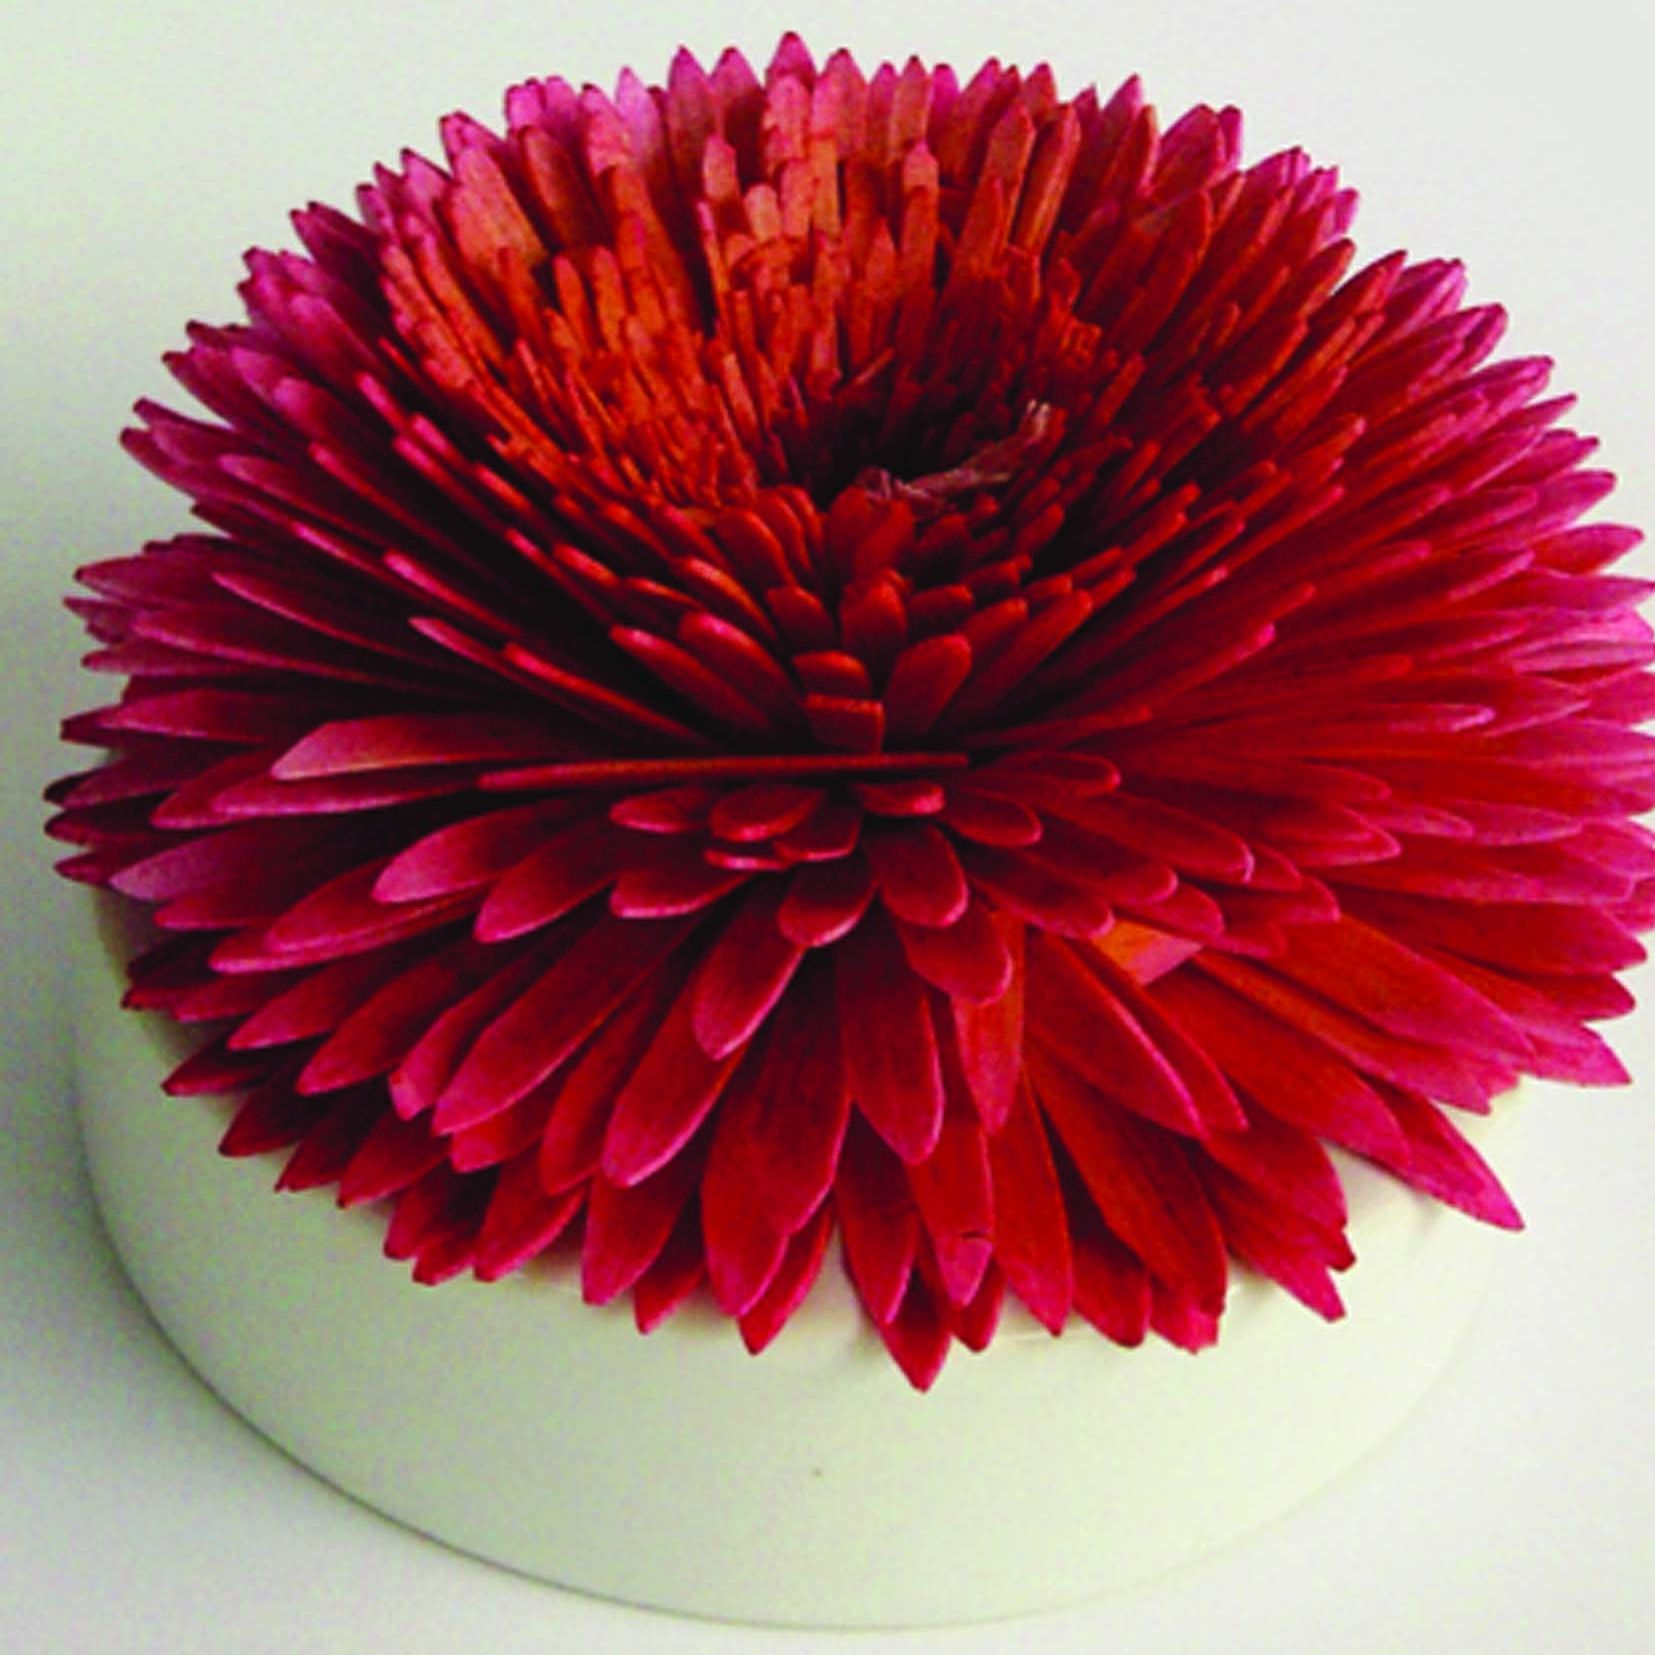 Colour changing blooming scent diffuser | Diffusers and Homewares online